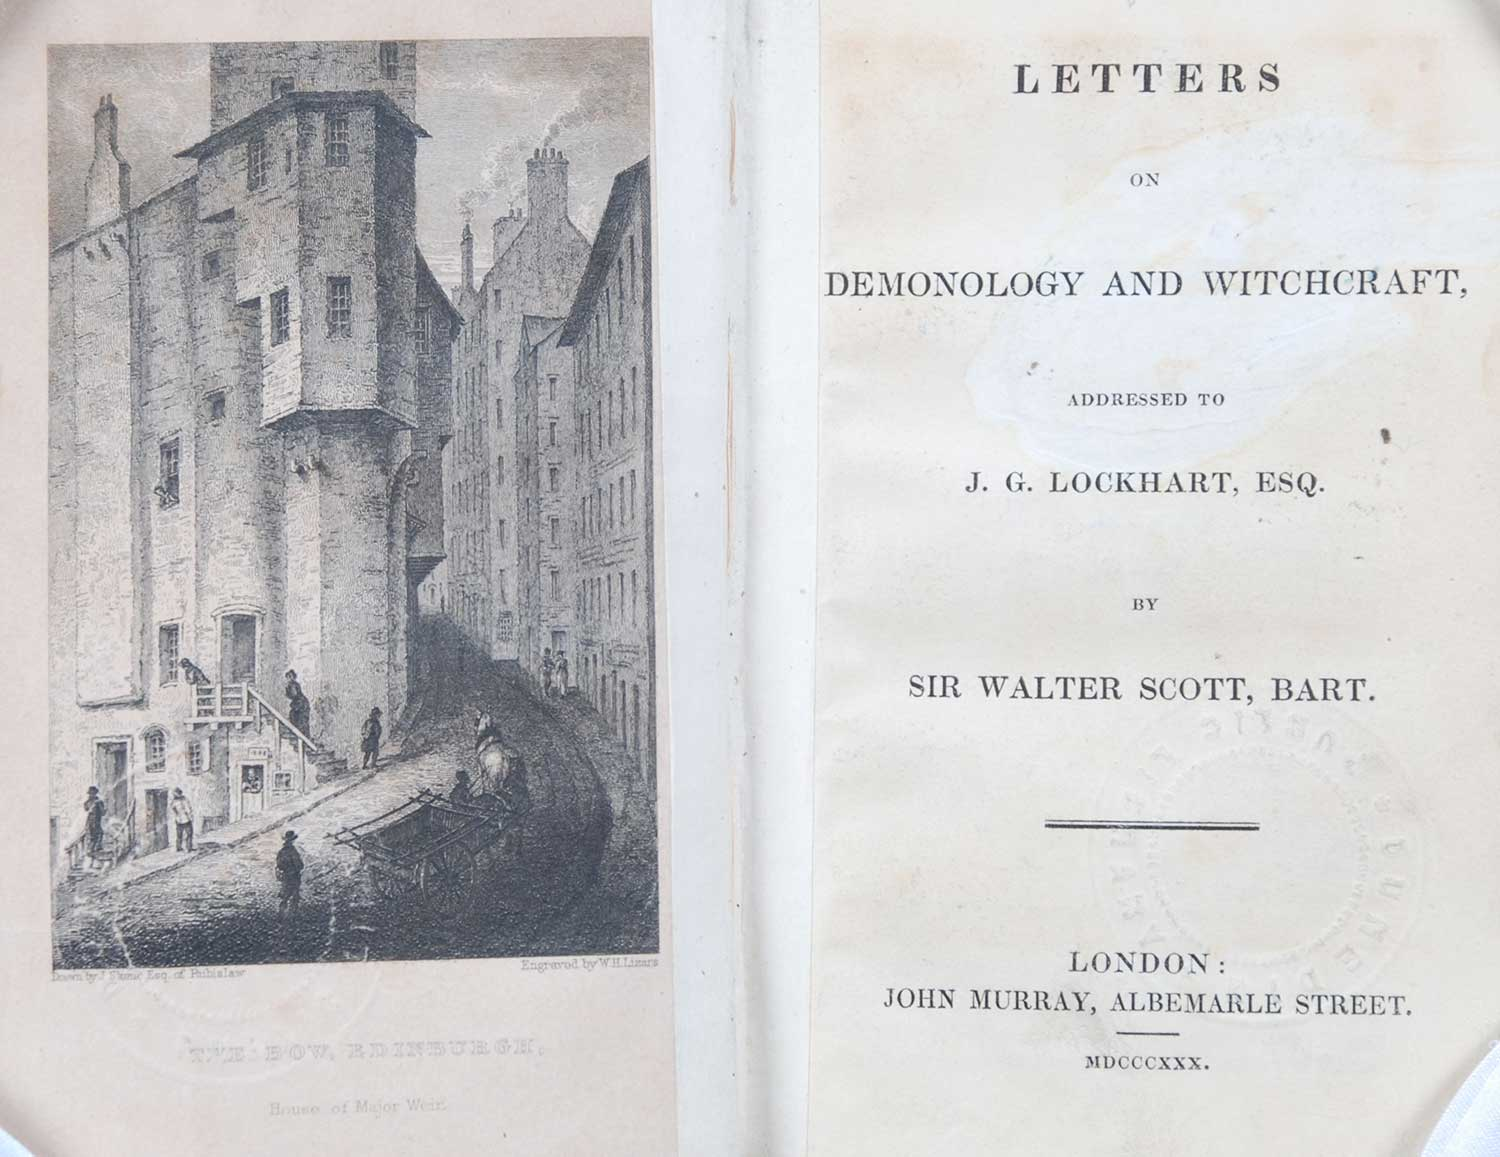 Sir Walter Scott. <em>Letters on demonology and witchcraft: addressed to J.G. Lockhart, Esq.</em> [1st edition]. London: John Murray, 1830.